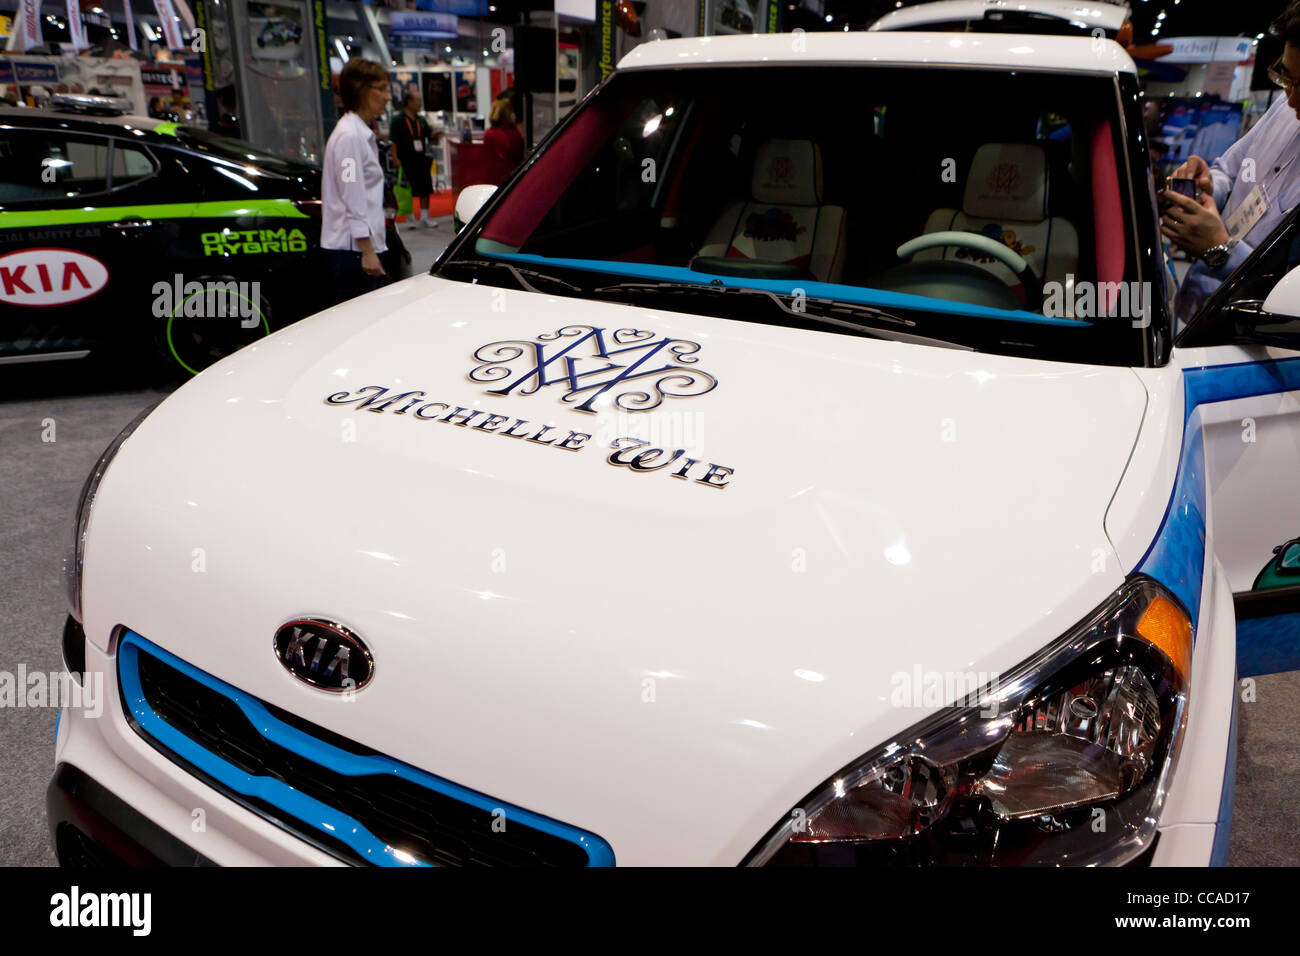 """""""Hole in One"""" Kia Soul - Kia Concept car inspired by Michelle Wie - Stock Image"""